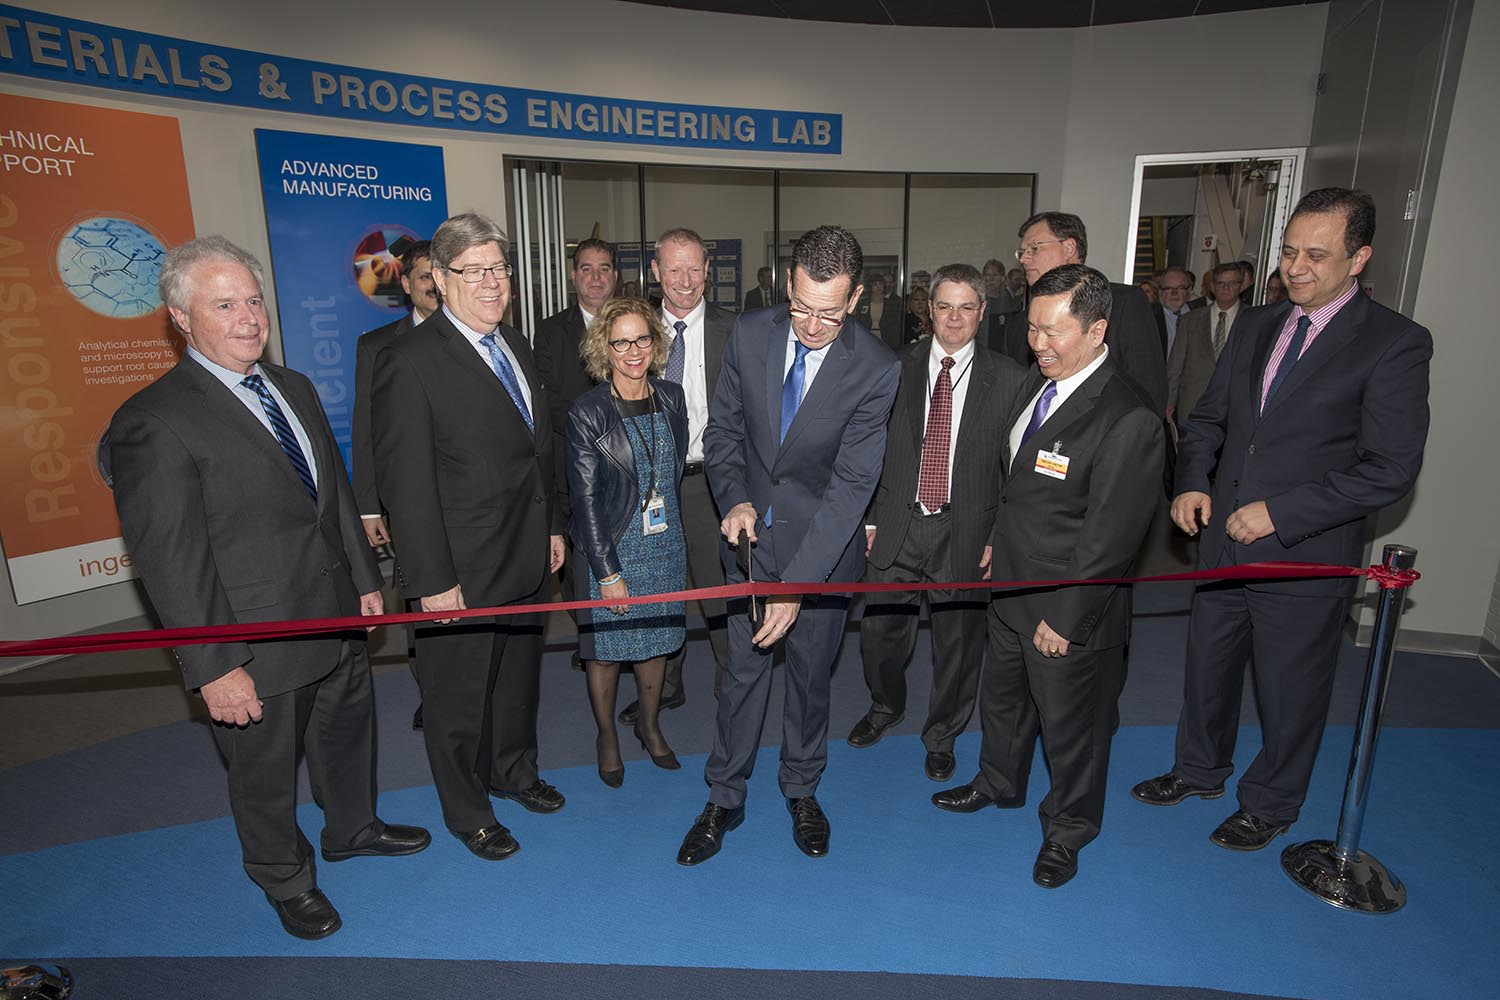 Governor Dannel P. Malloy cuts a ribbon at the new UTAS lab. Front from left to right is Dave Carter, Senior Vice President, Engineering, Operations and Quality, UTC Aerospace Systems, J. Michael McQuade, Senior Vice President of Science and Technology, United Technologies, Malloy, and UConn Provost Mun Choi, with other prominent United Technologies officials and dignitaries present.Governor Dannel P. Malloy cuts a ribbon at the new UTAS lab. Front from left to right is Dave Carter, Senior Vice President, Engineering, Operations and Quality, UTC Aerospace Systems, J. Michael McQuade, Senior Vice President of Science and Technology, United Technologies, Malloy, and UConn Provost Mun Choi, with other prominent United Technologies officials and dignitaries present.